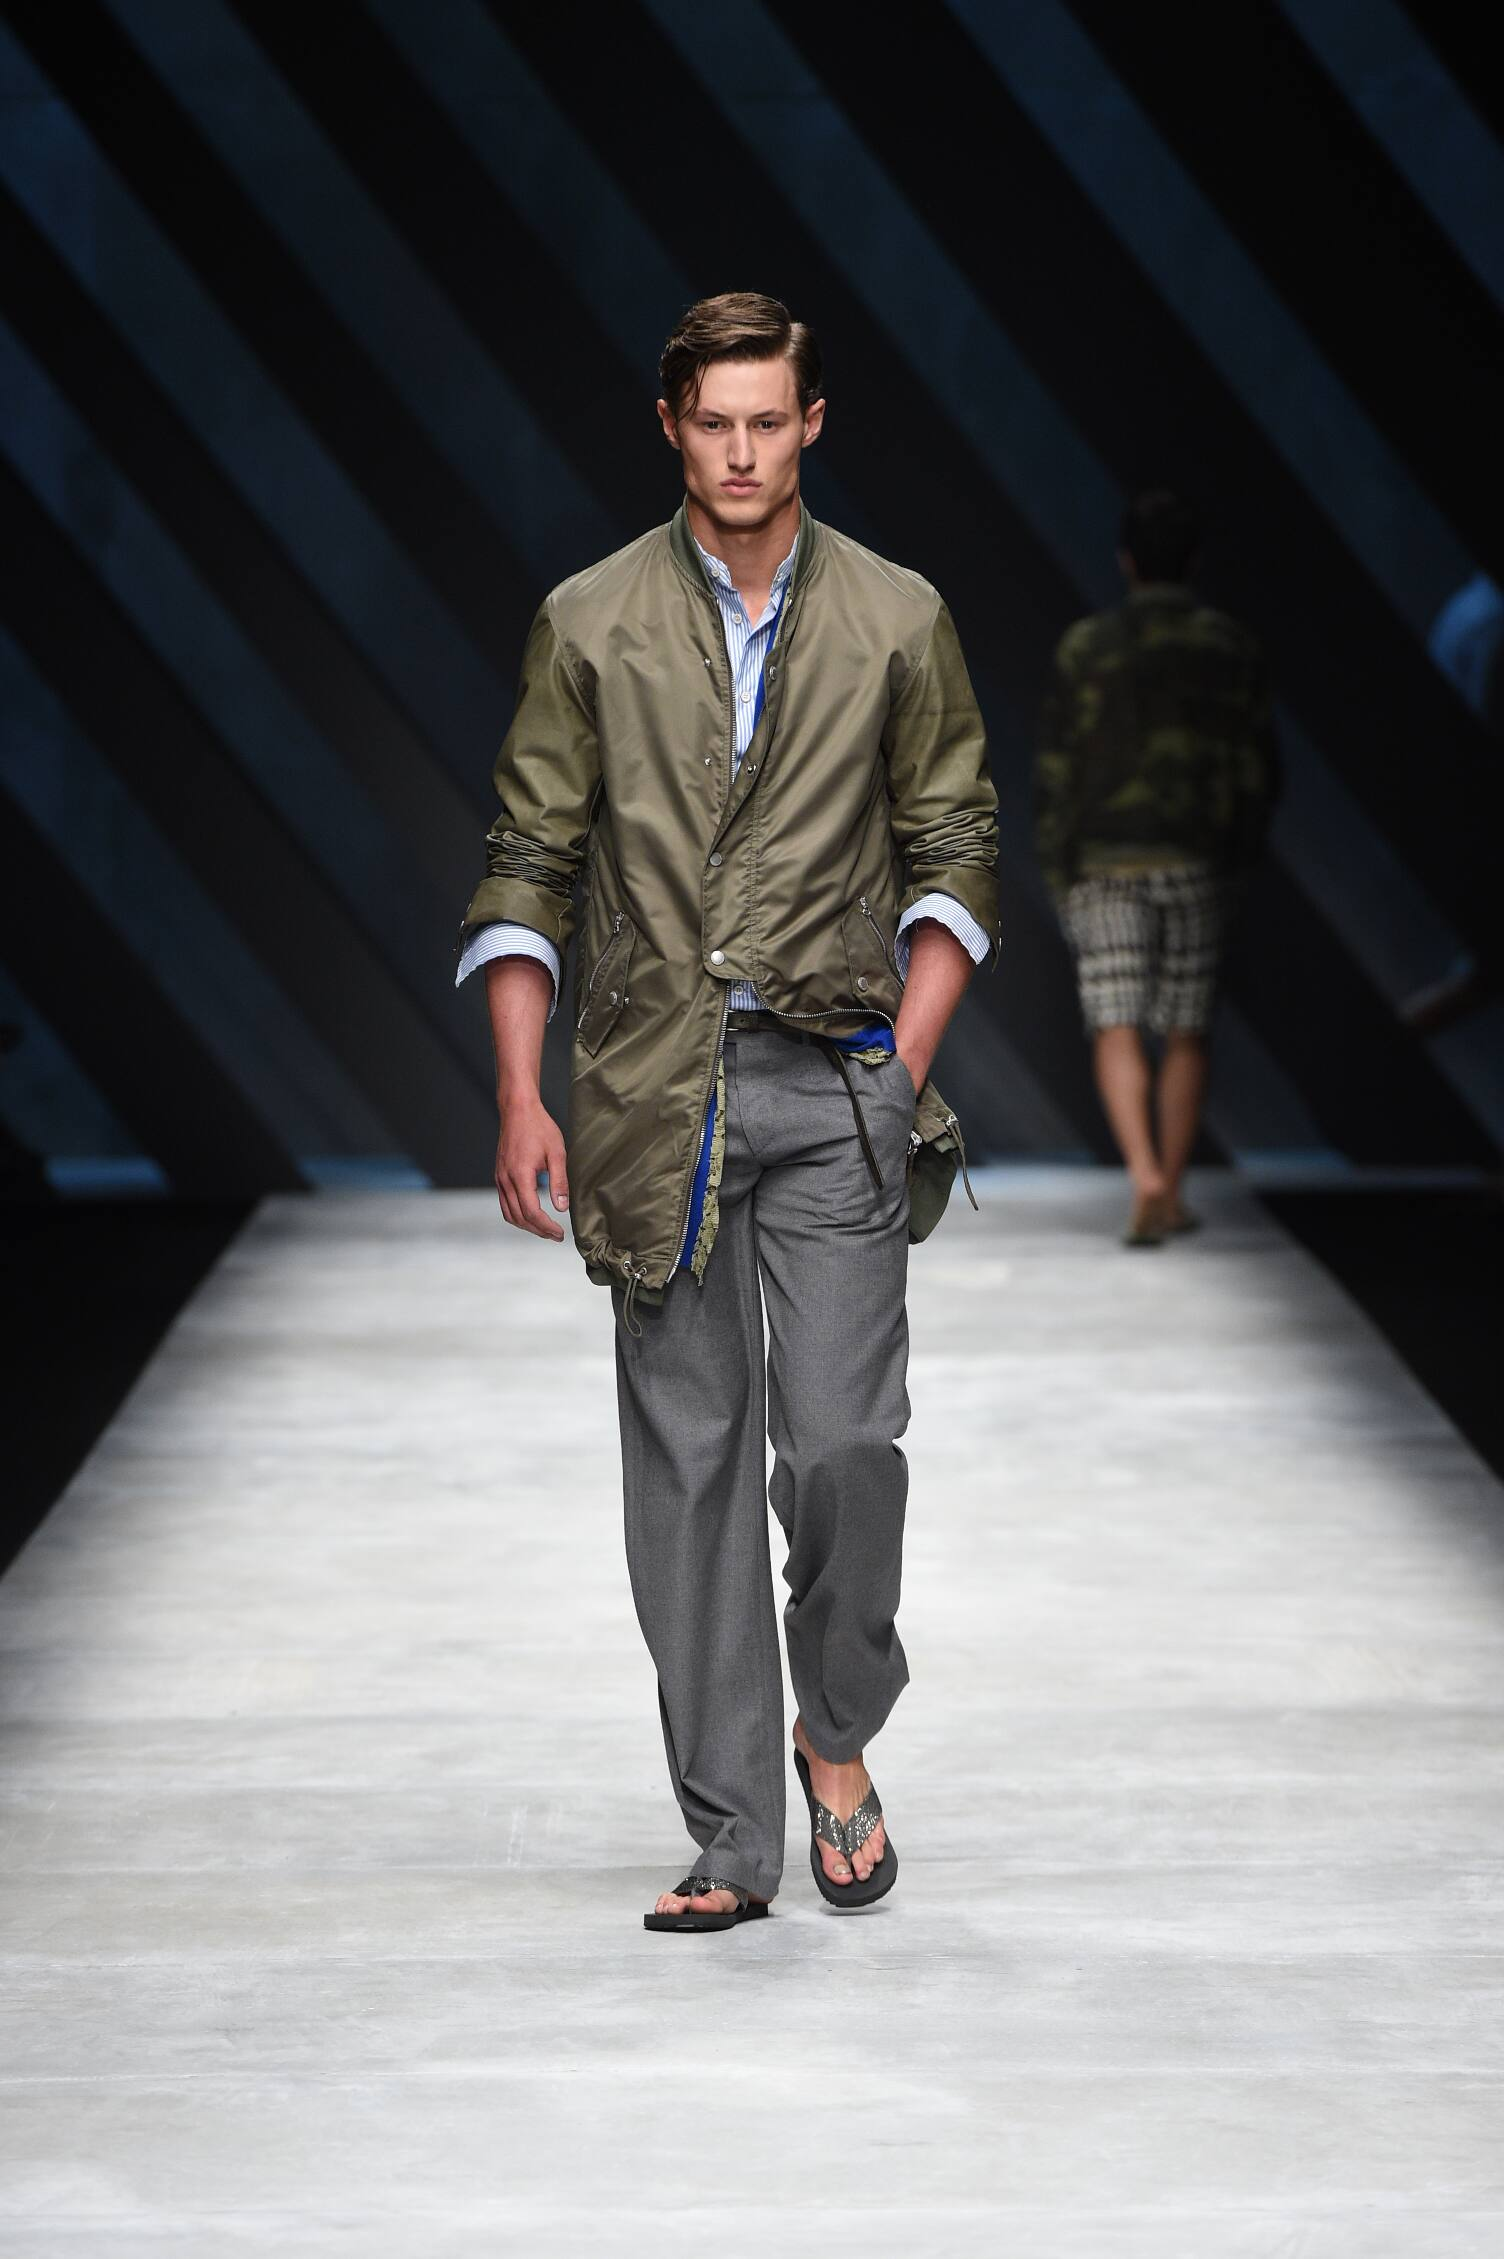 Ermanno Scervino Spring Summer 2016 Menswear Collection Milan Fashion Week Fashion Show